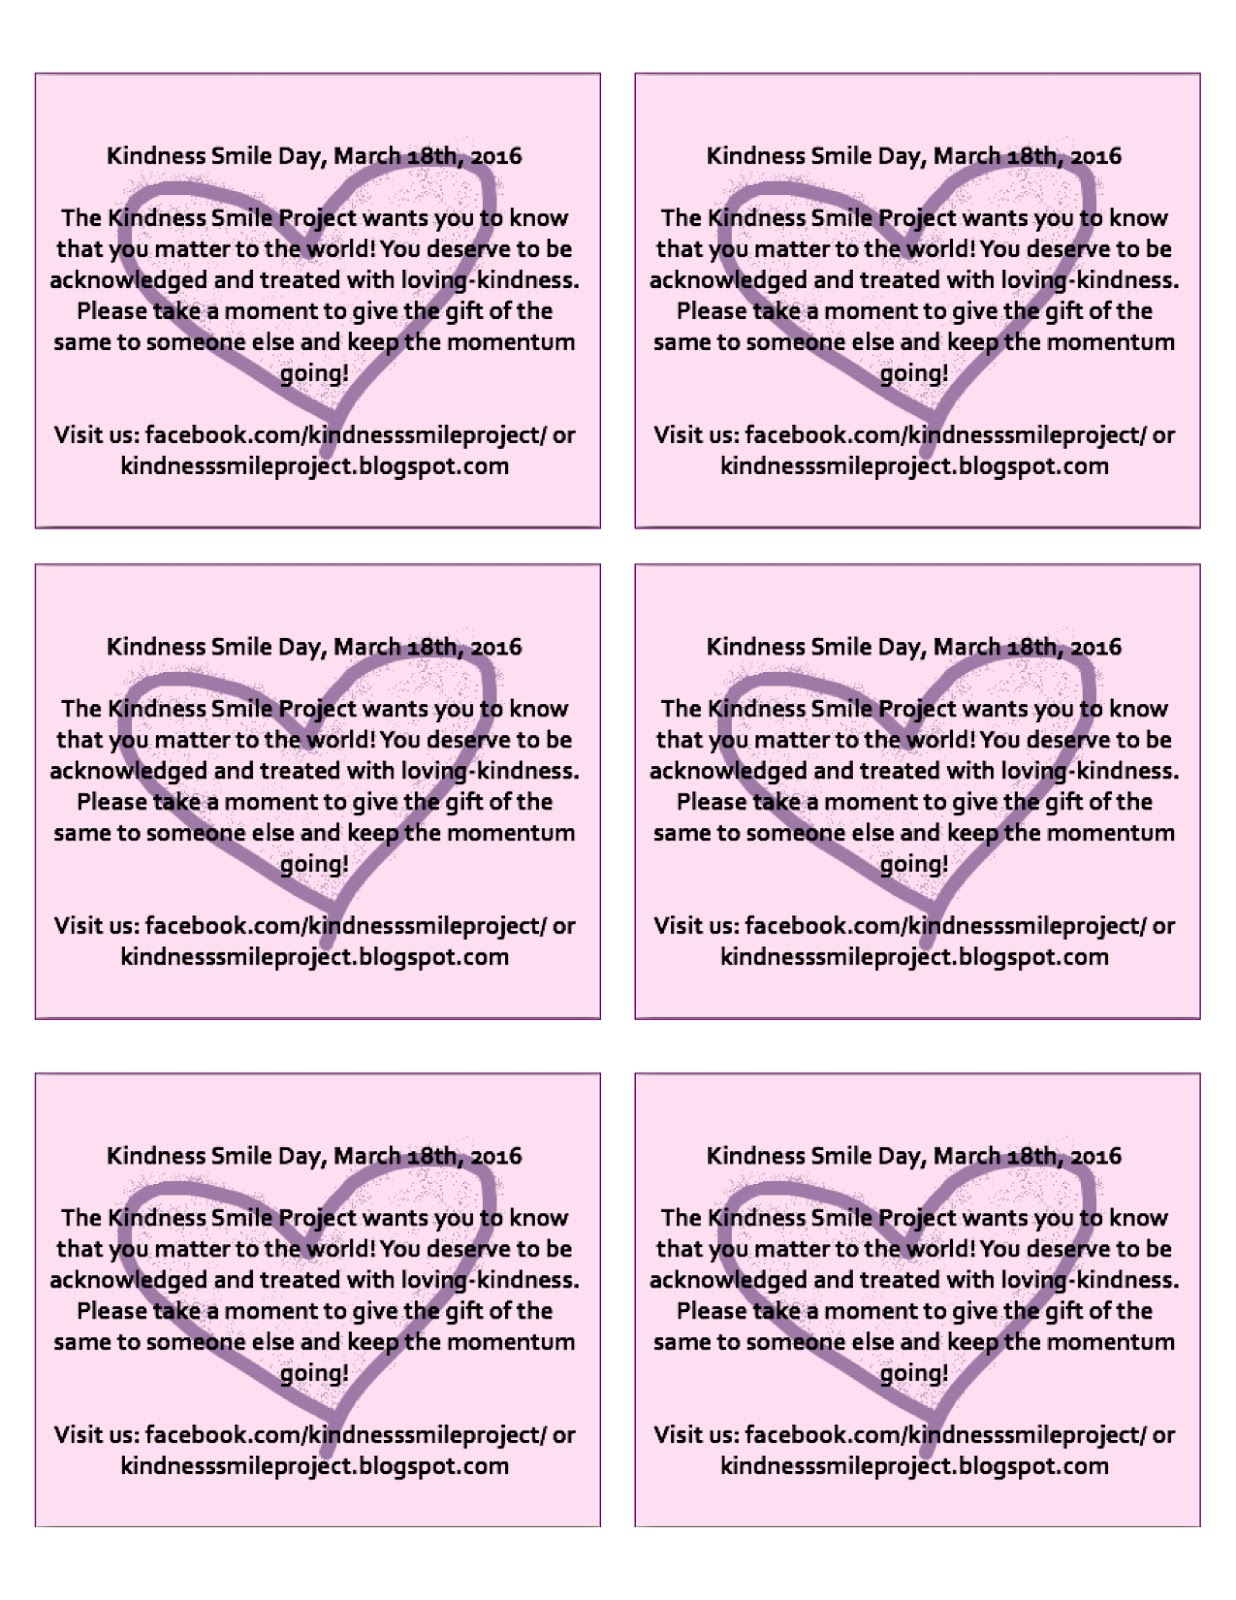 image relating to Kindness Cards Printable referred to as The Kindness Smile Task: Kindness Smile Working day is virtually